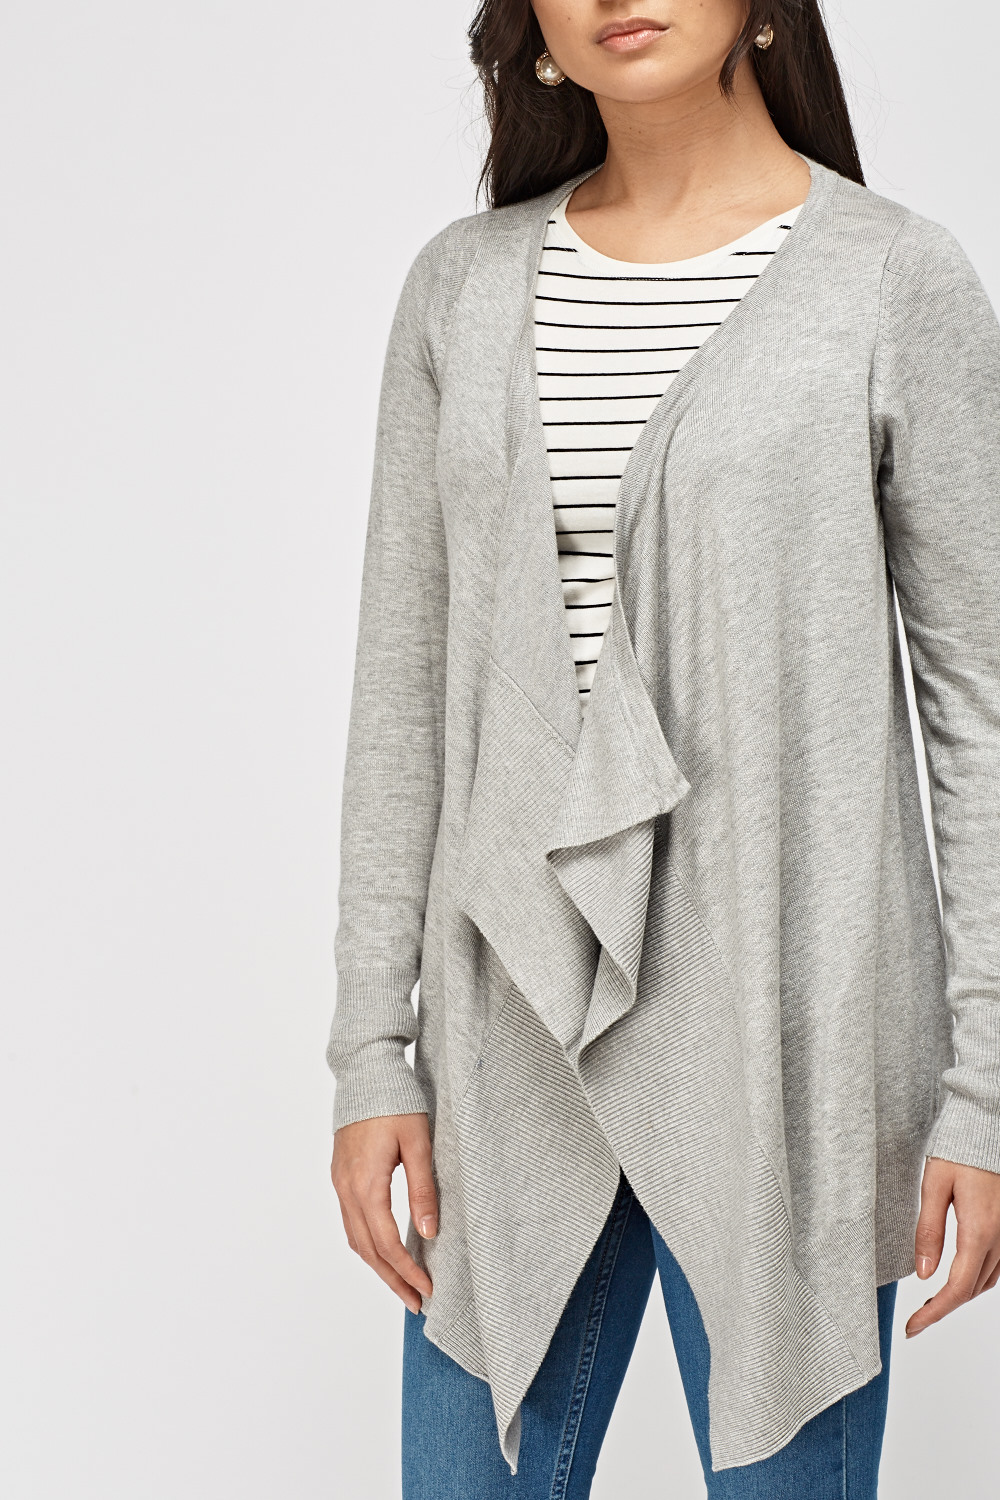 Waterfall Thin Knitted Cardigan - 4 Colours - Just £5